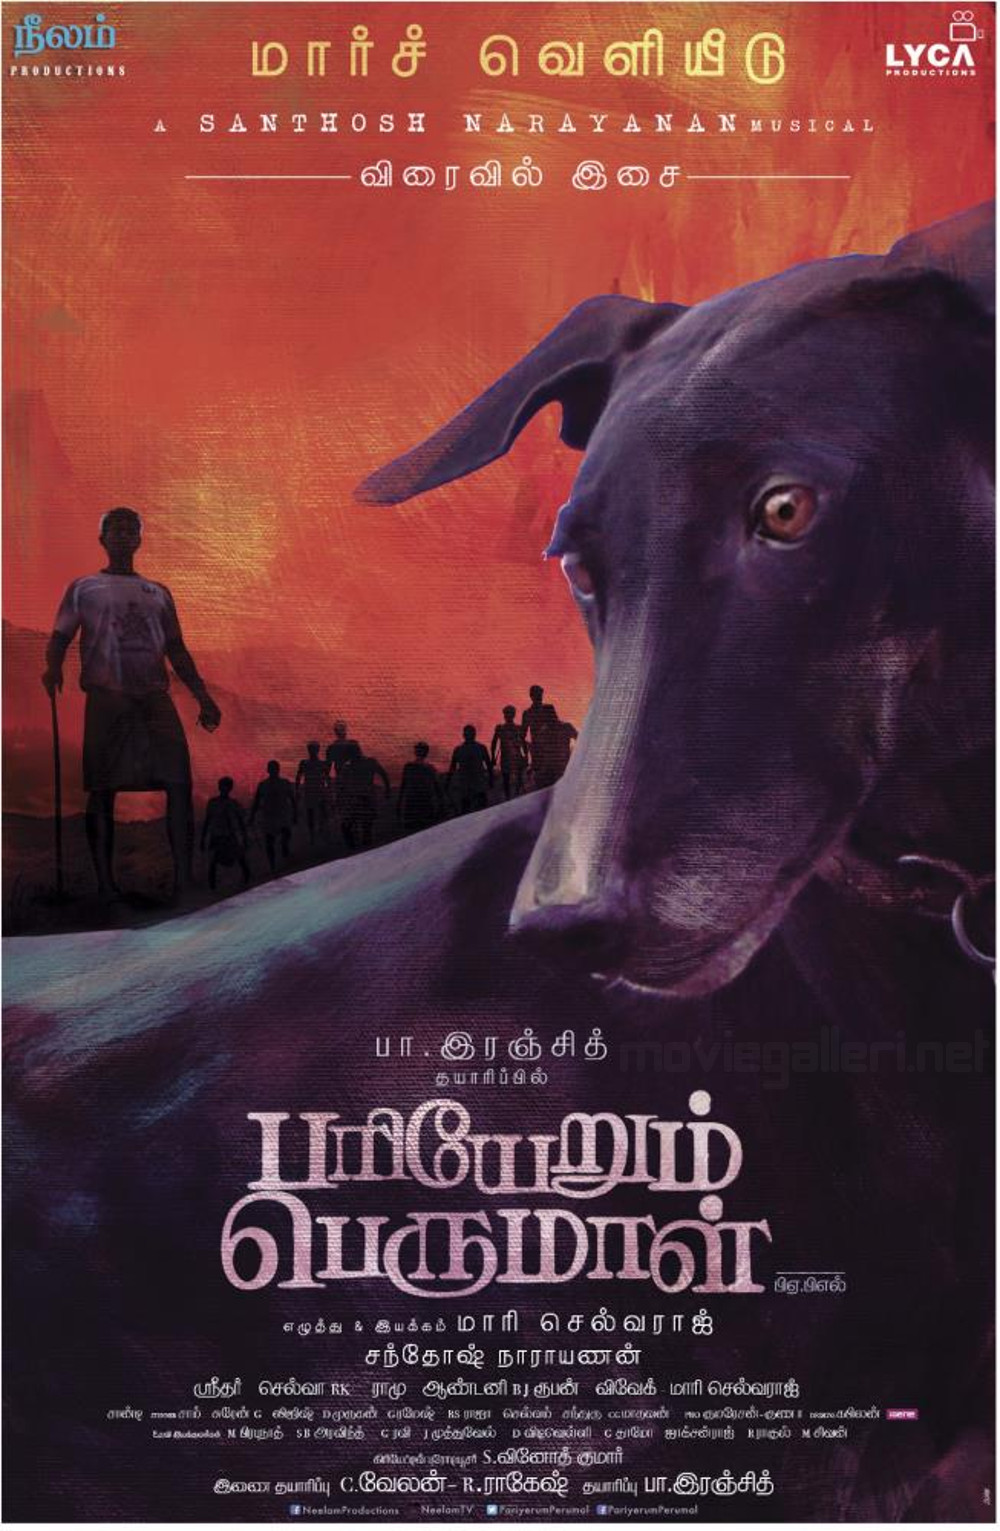 Rajinikanth Hd Wallpapers Pariyerum Perumal First Look Posters New Movie Posters